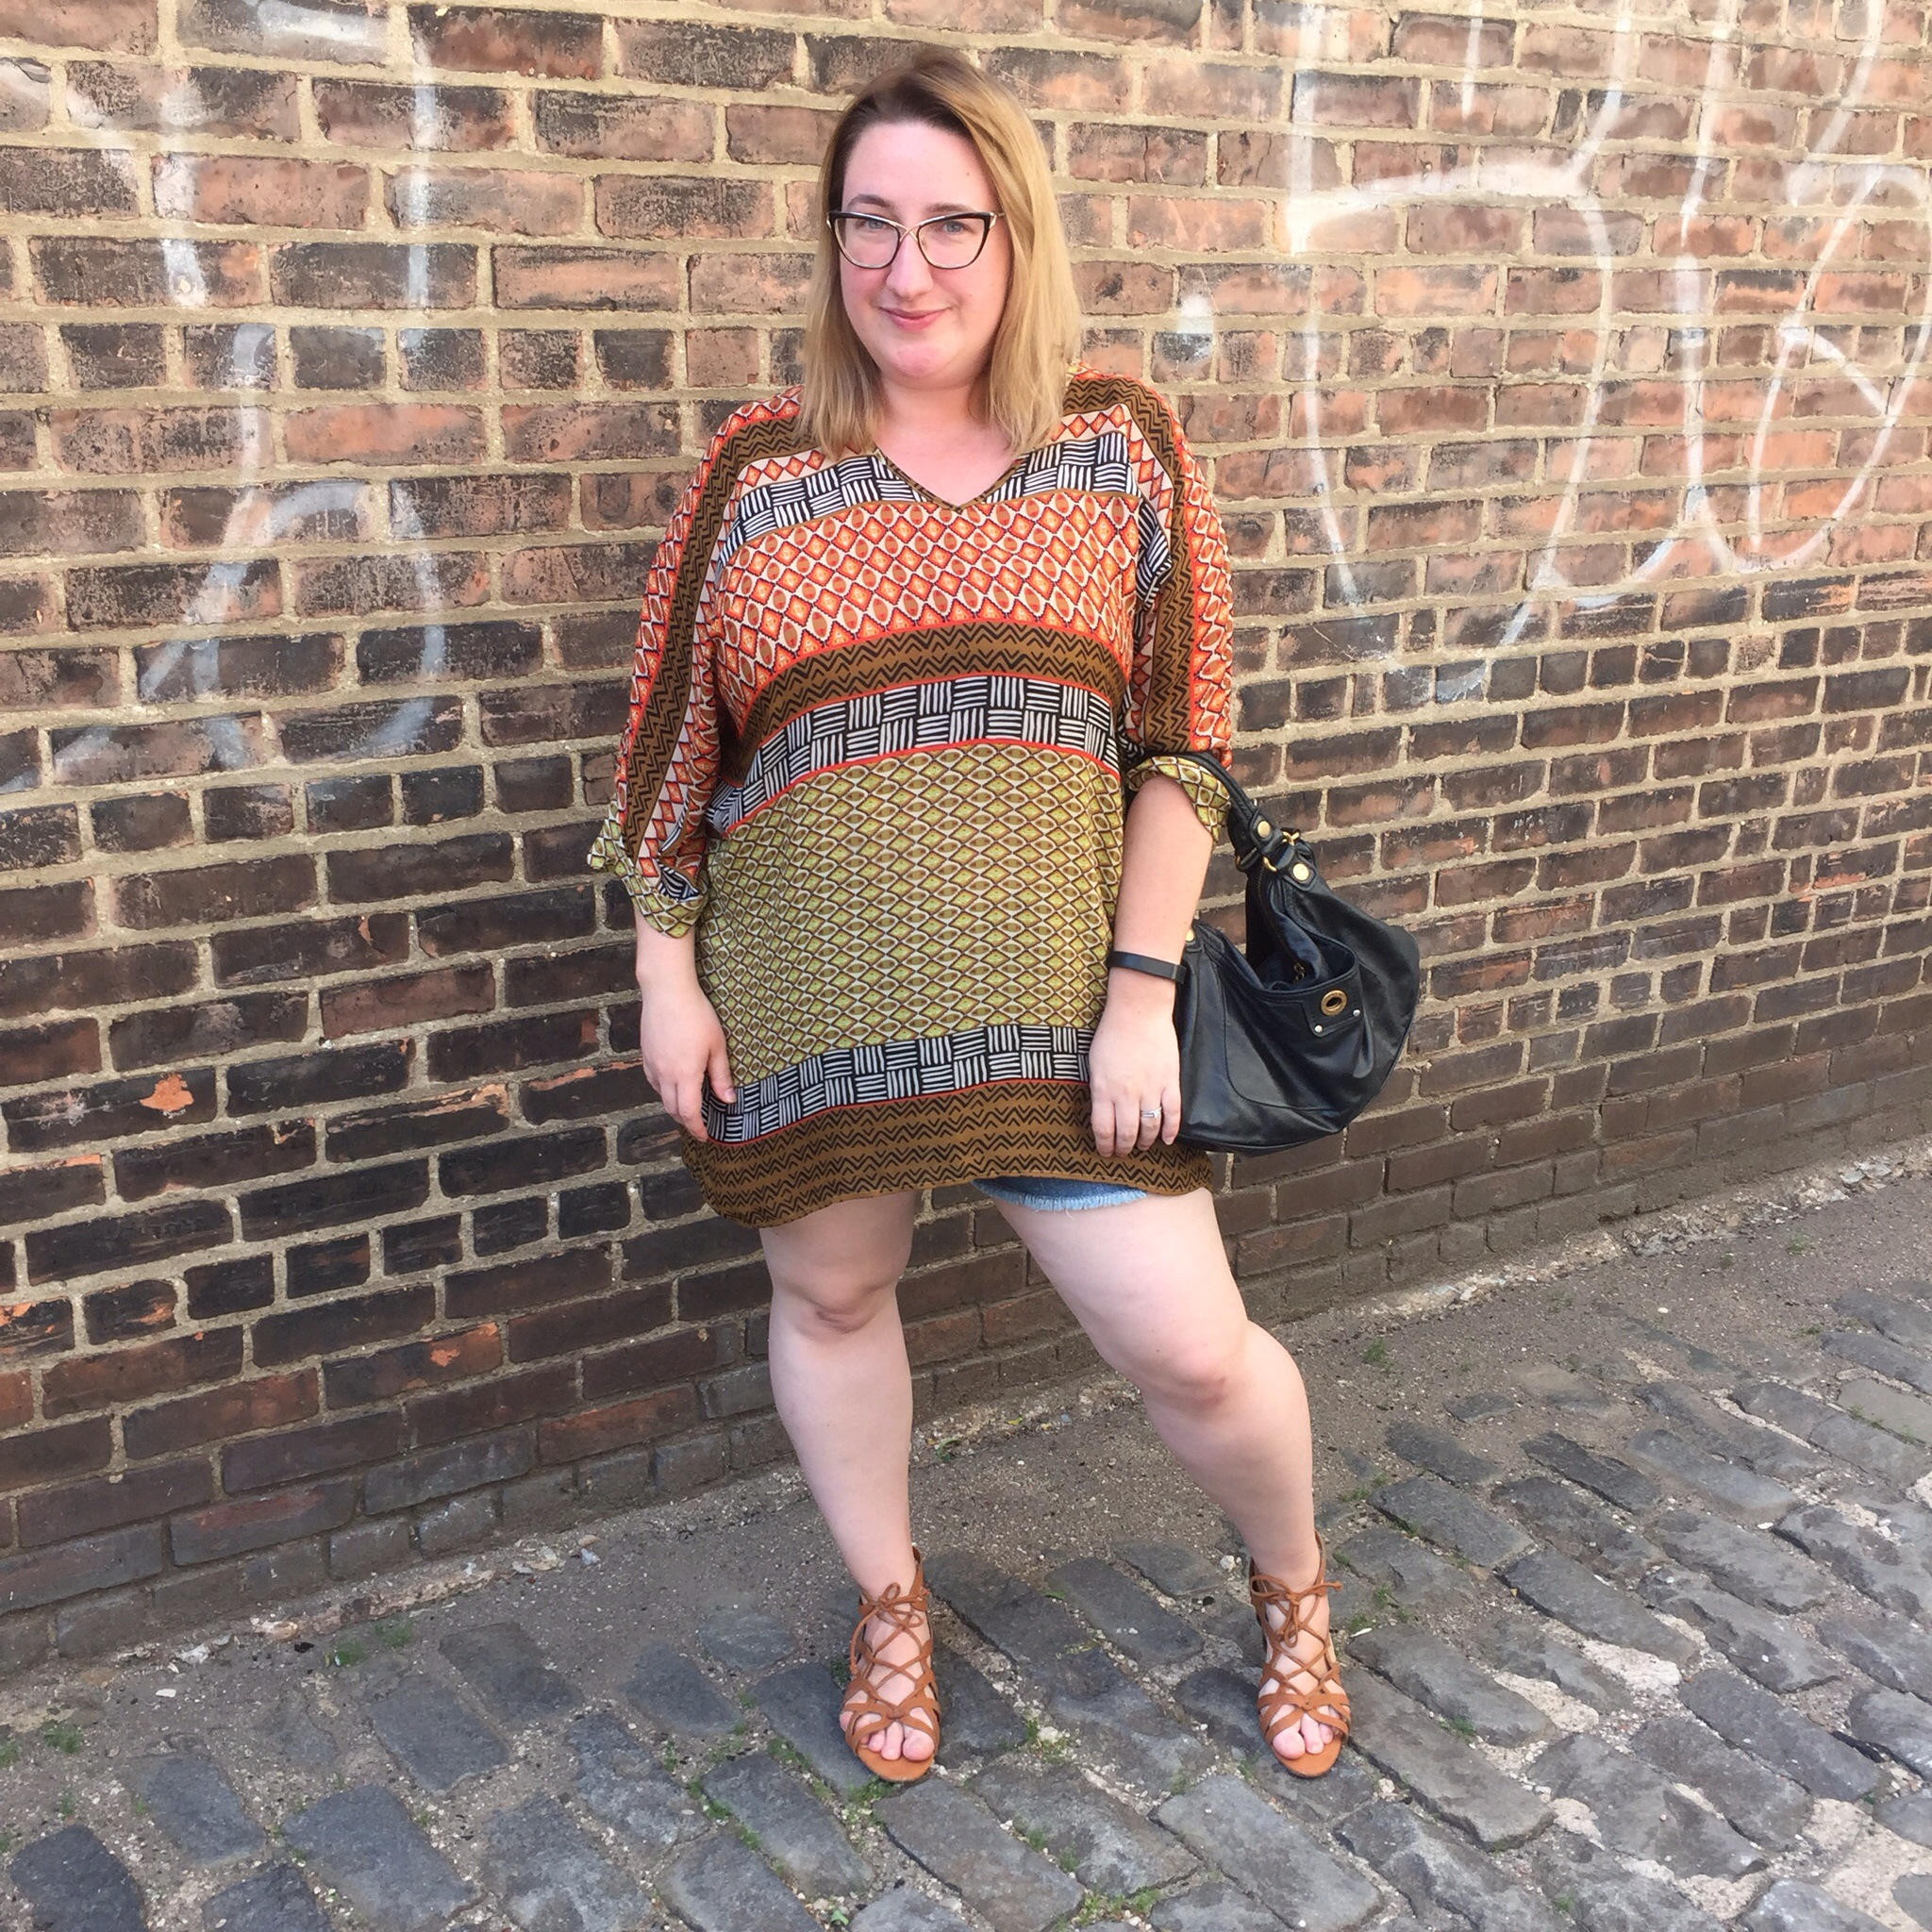 OOTD: Hot Weather and Warm Tones